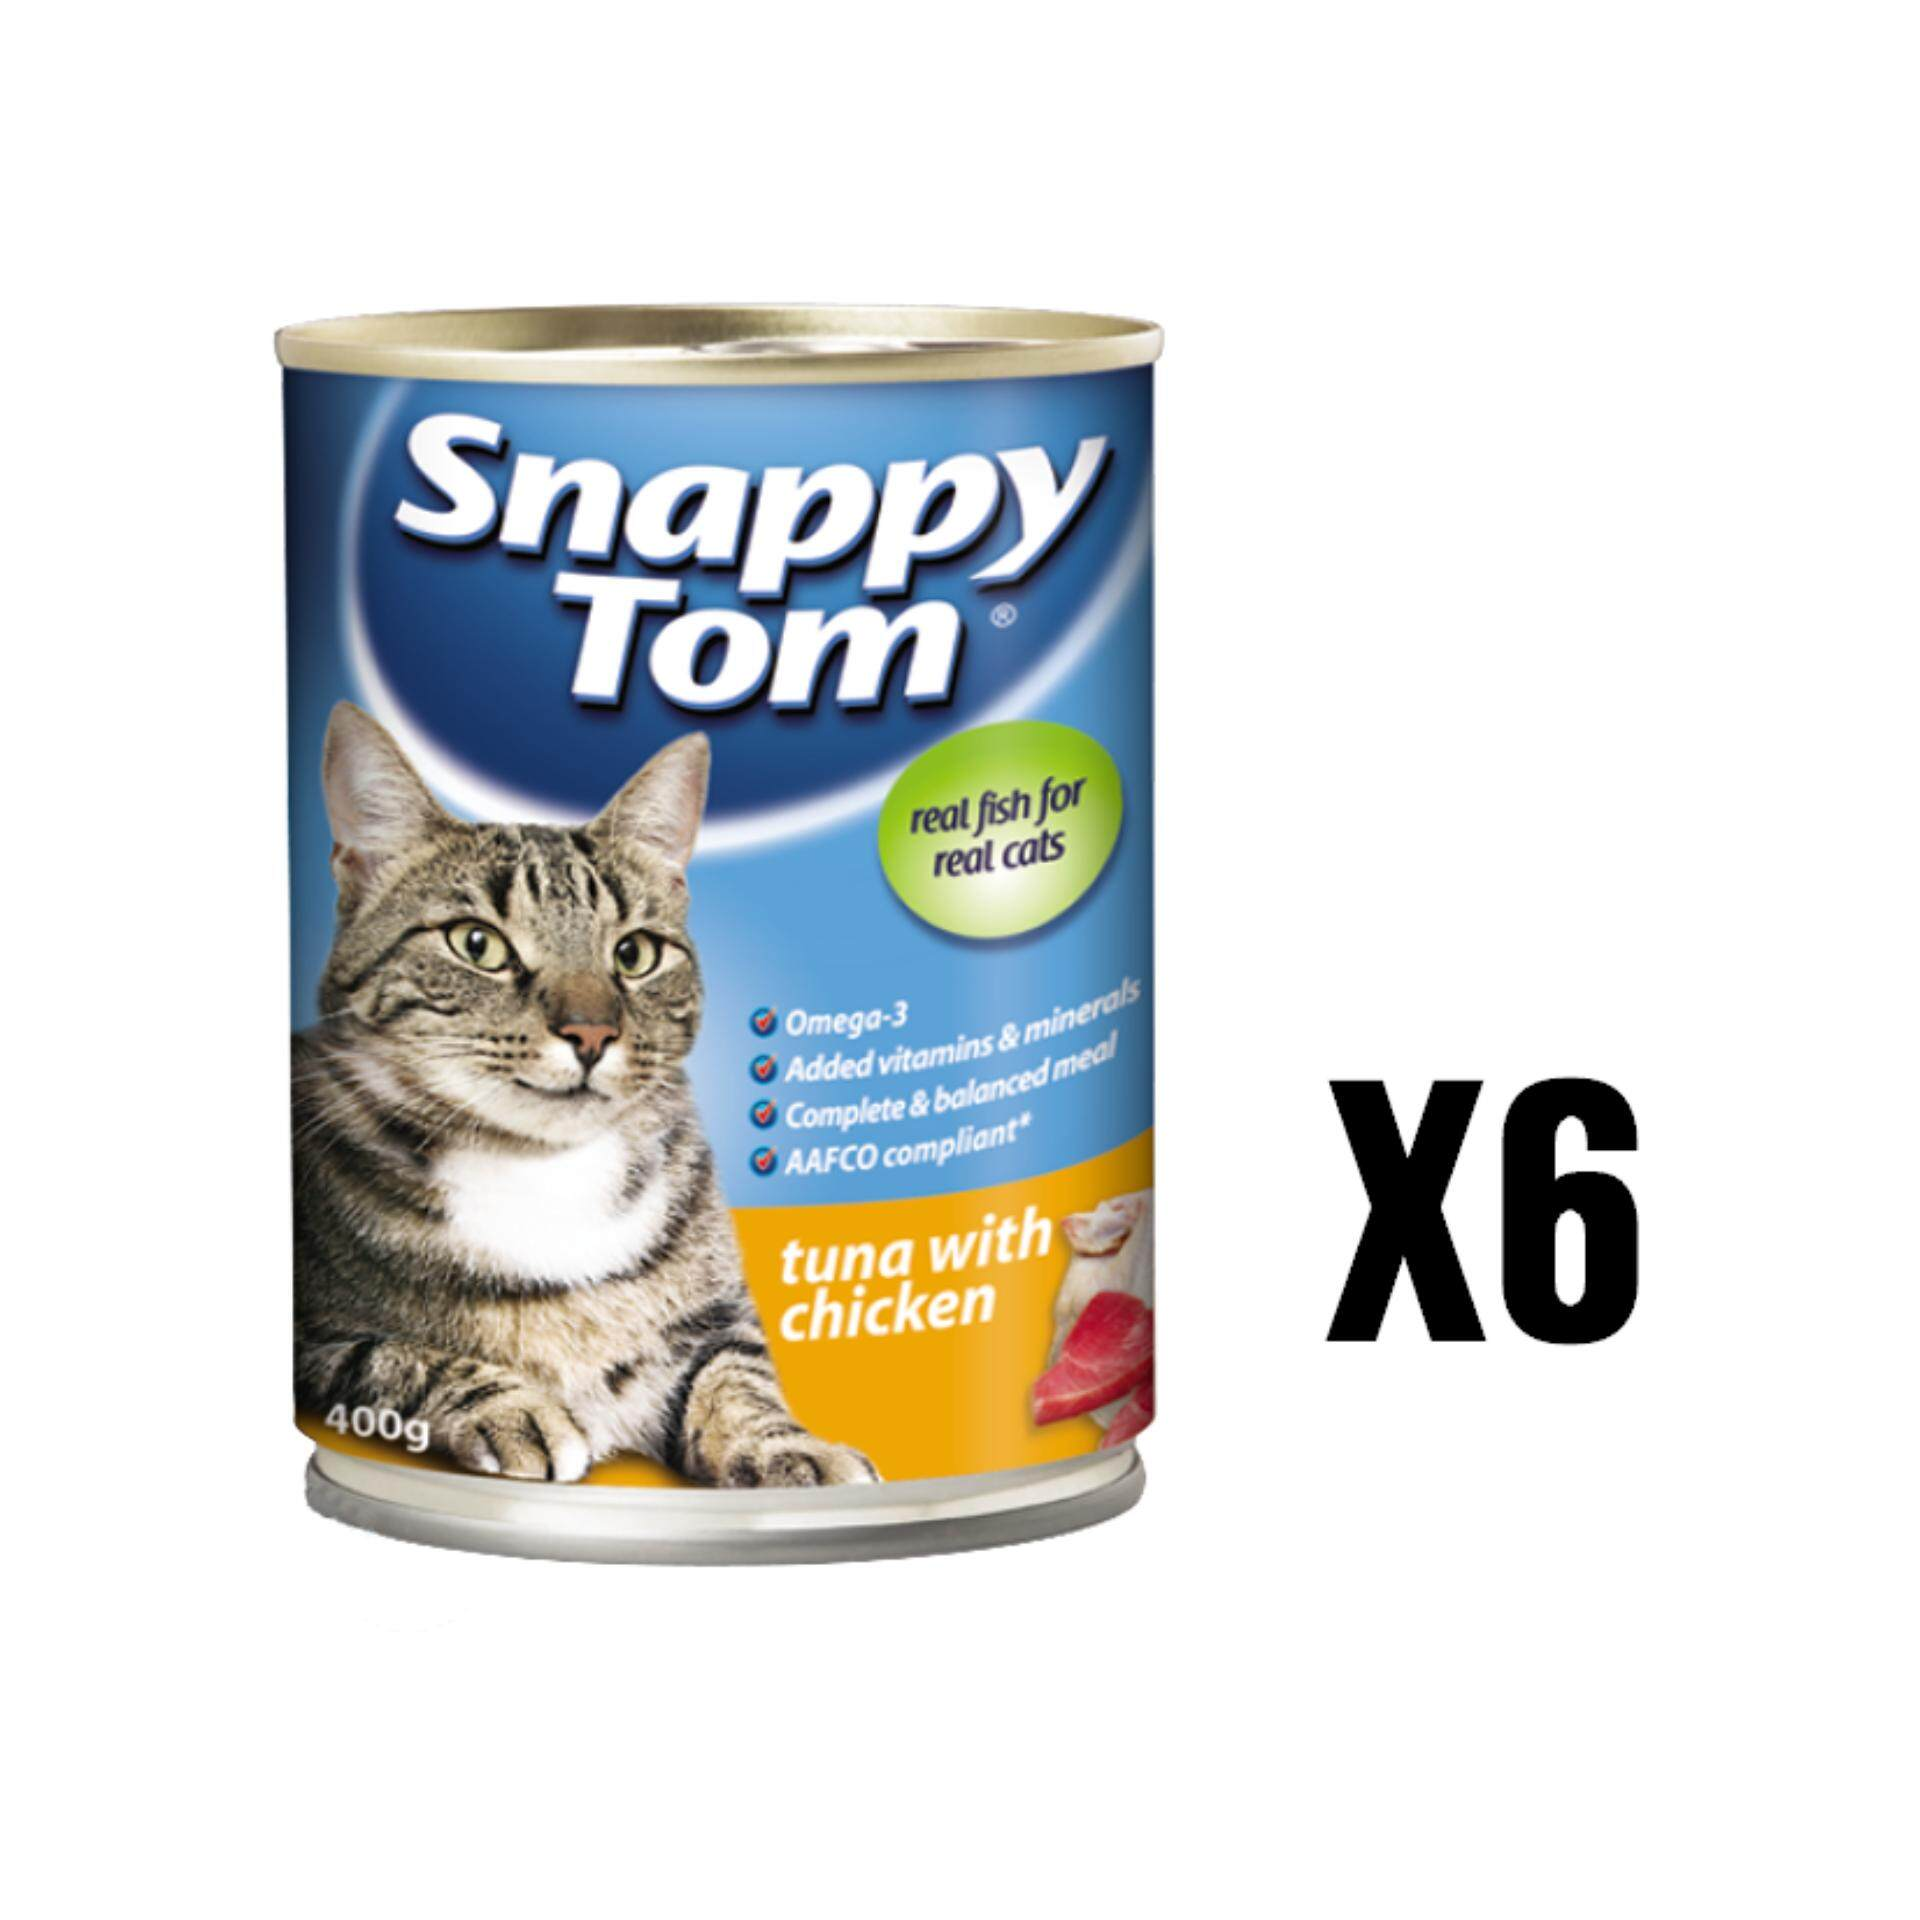 Snappy Tom Tuna With Chicken 400g